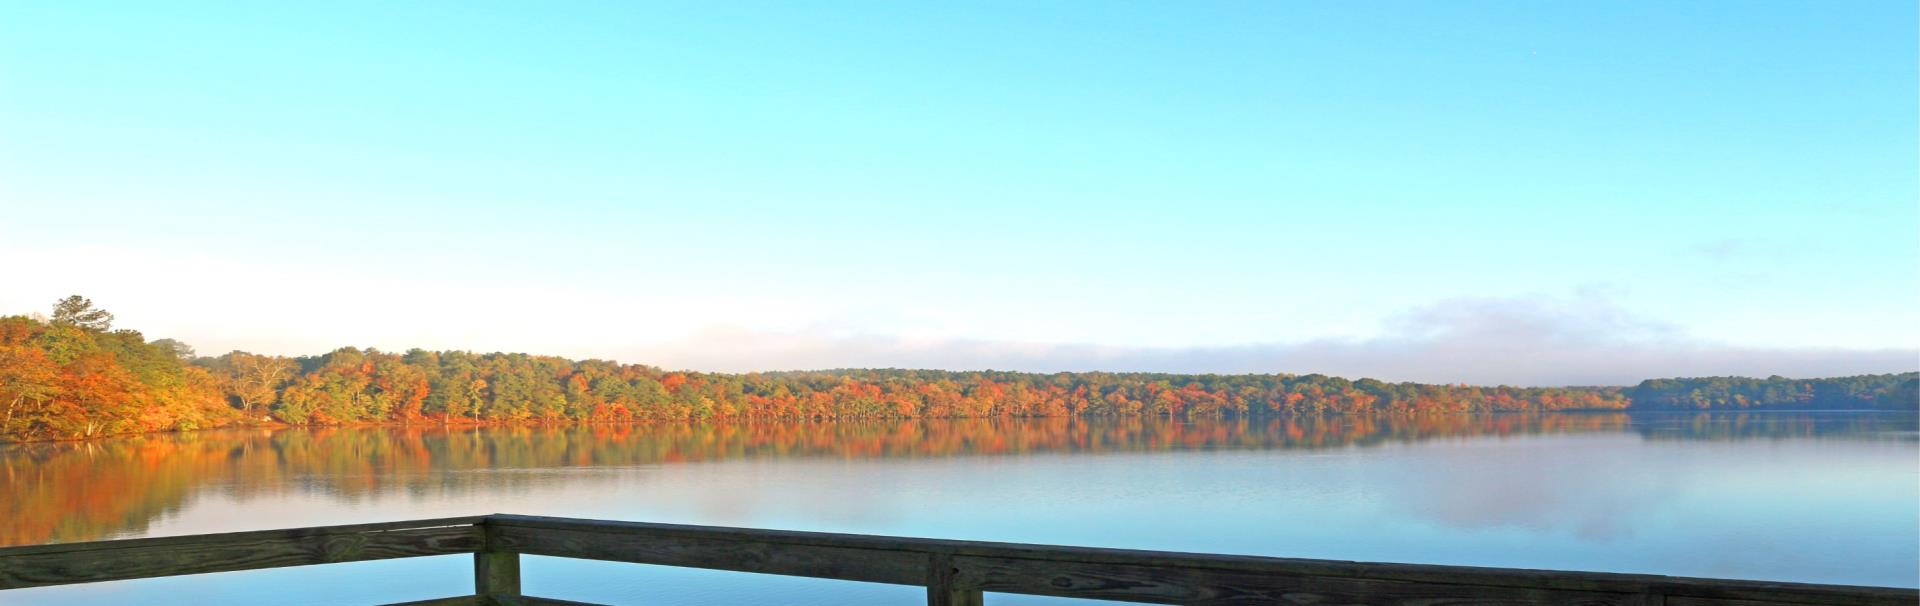 Fall on Lake Rogers